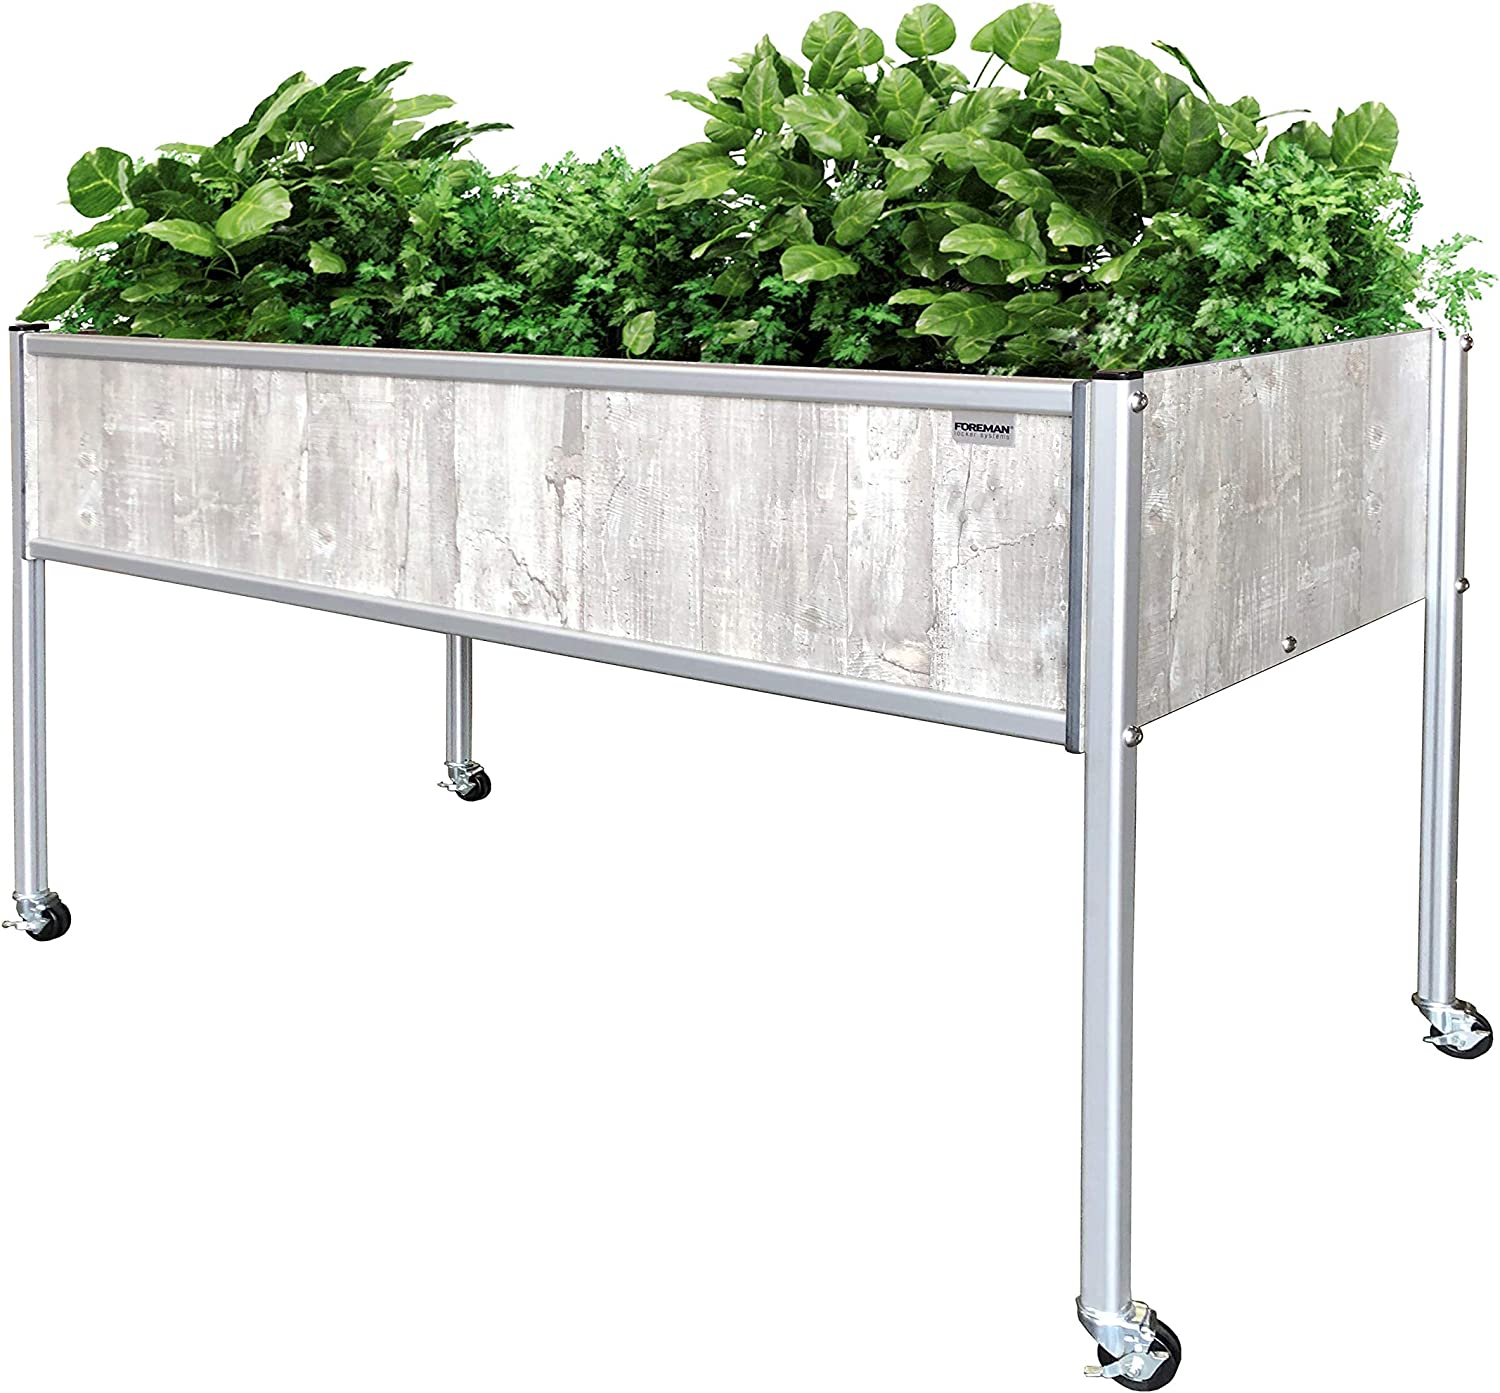 "Foreman Raised Garden Bed 48""Lx24""Wx32""H 10 Year Warranty Premium HPL Plastic Wood Grain Aluminum Legs with Lockable Wheels Elevated Planter Box for Backyard Patio Balcony, Monte"